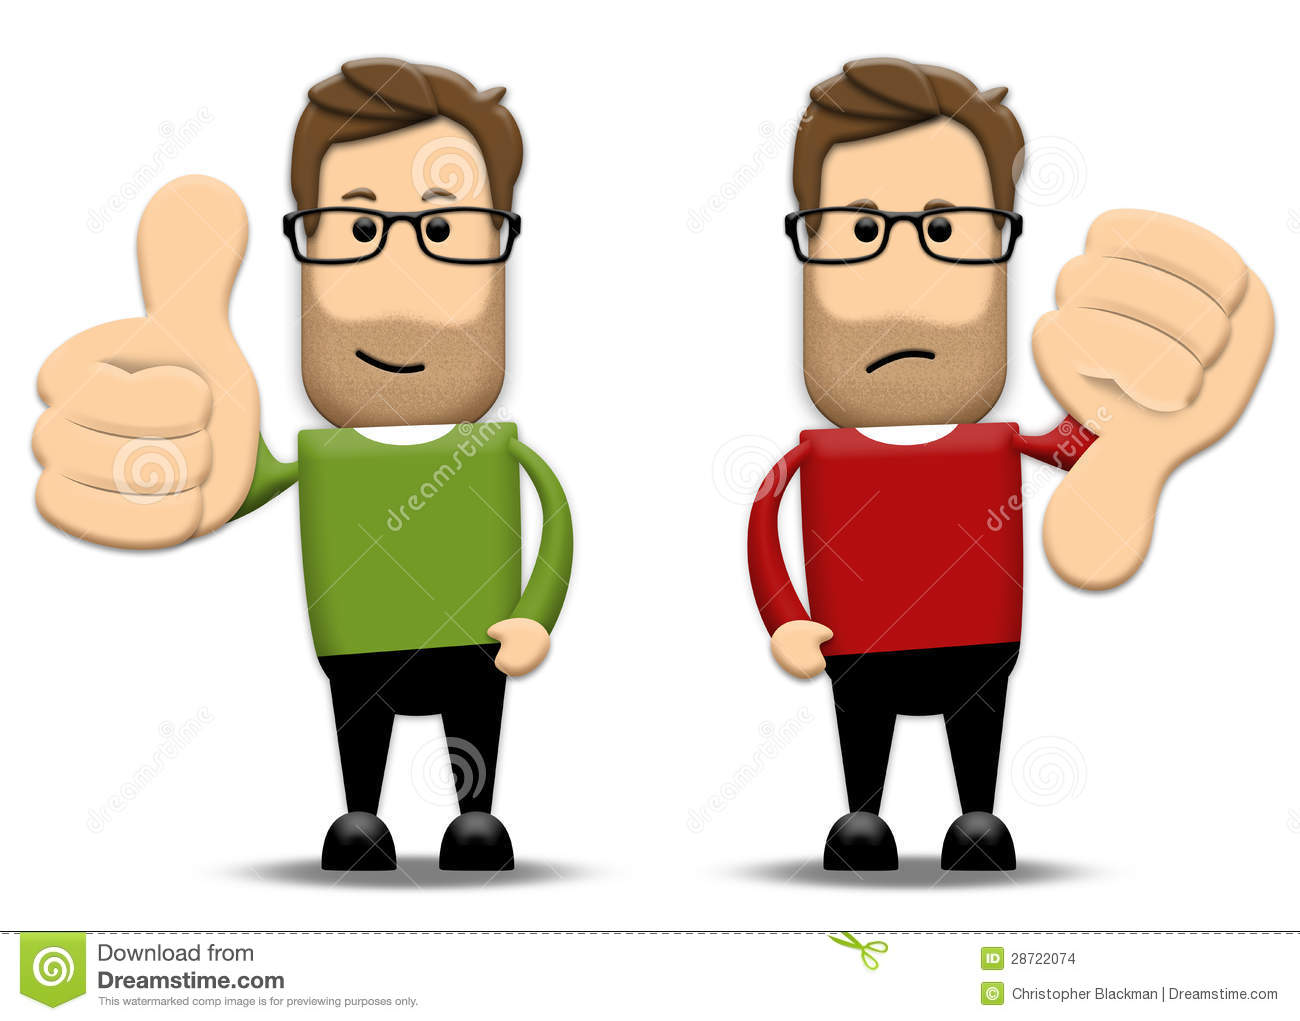 Clipart thumbs up and down picture free stock Thumbs Up, Thumbs Down Stock Images - Image: 28722074 picture free stock